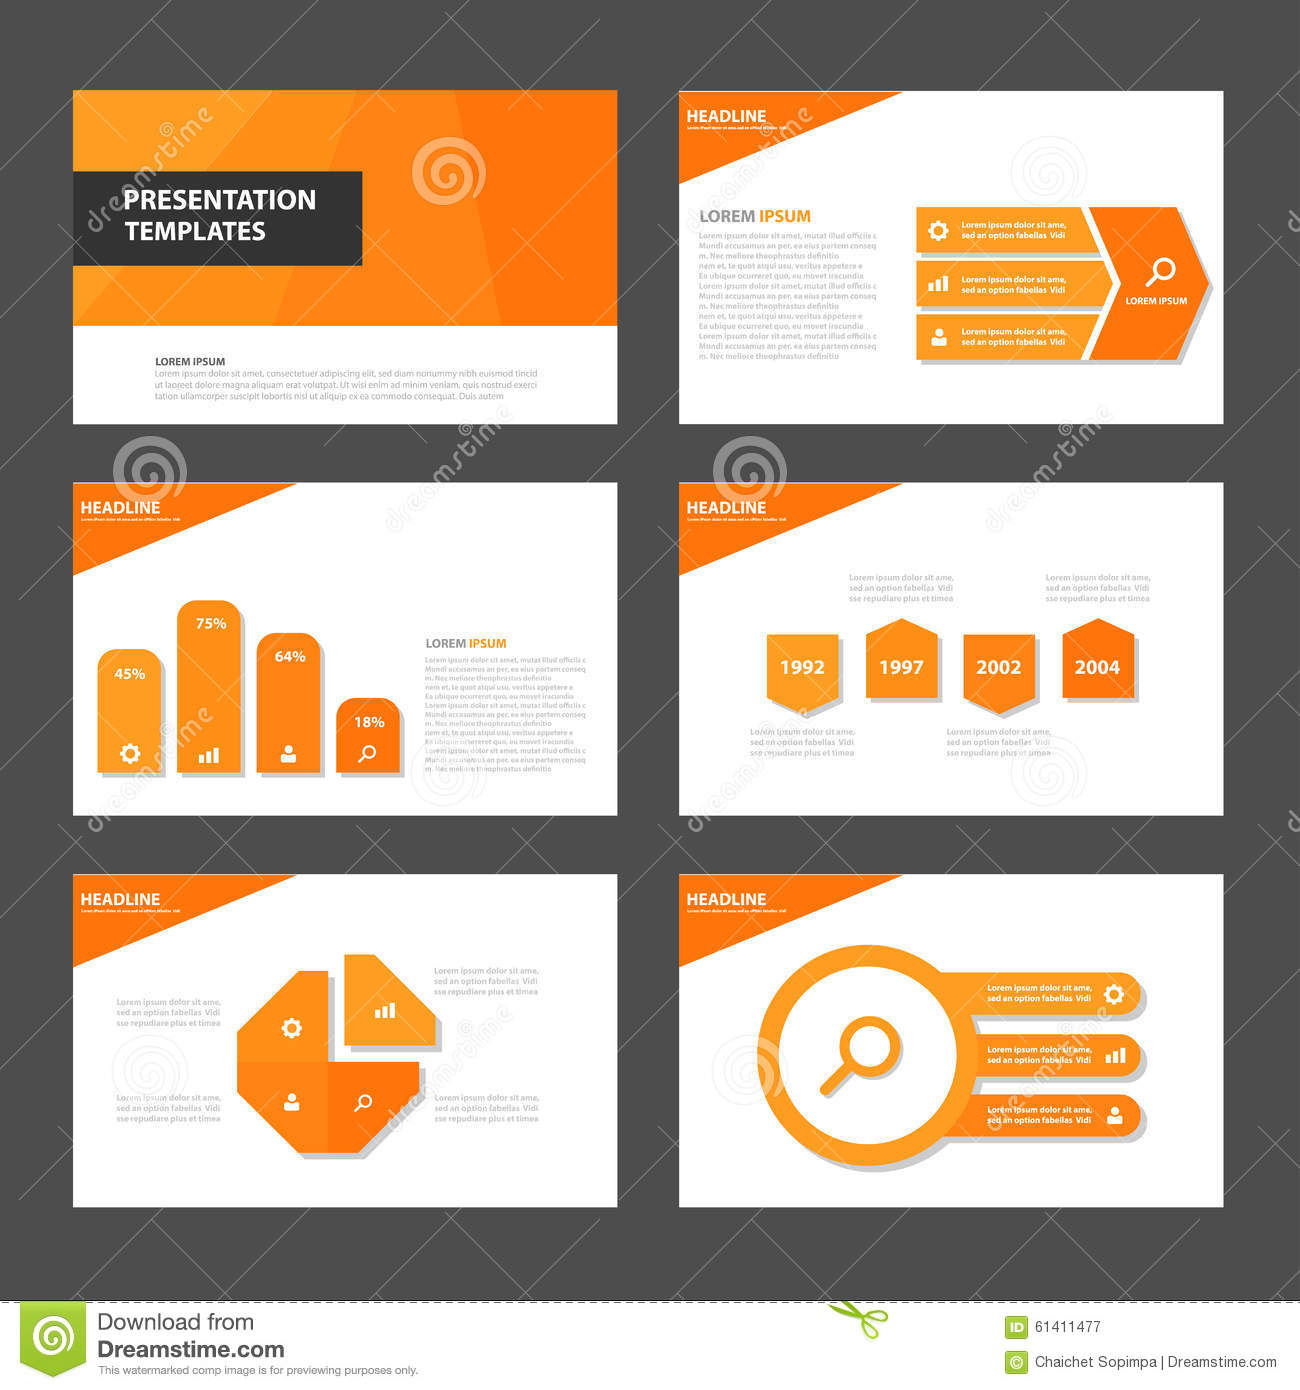 Orange Infographic elements and icon presentation template flat design set for advertising marketing brochure flyer leaflet